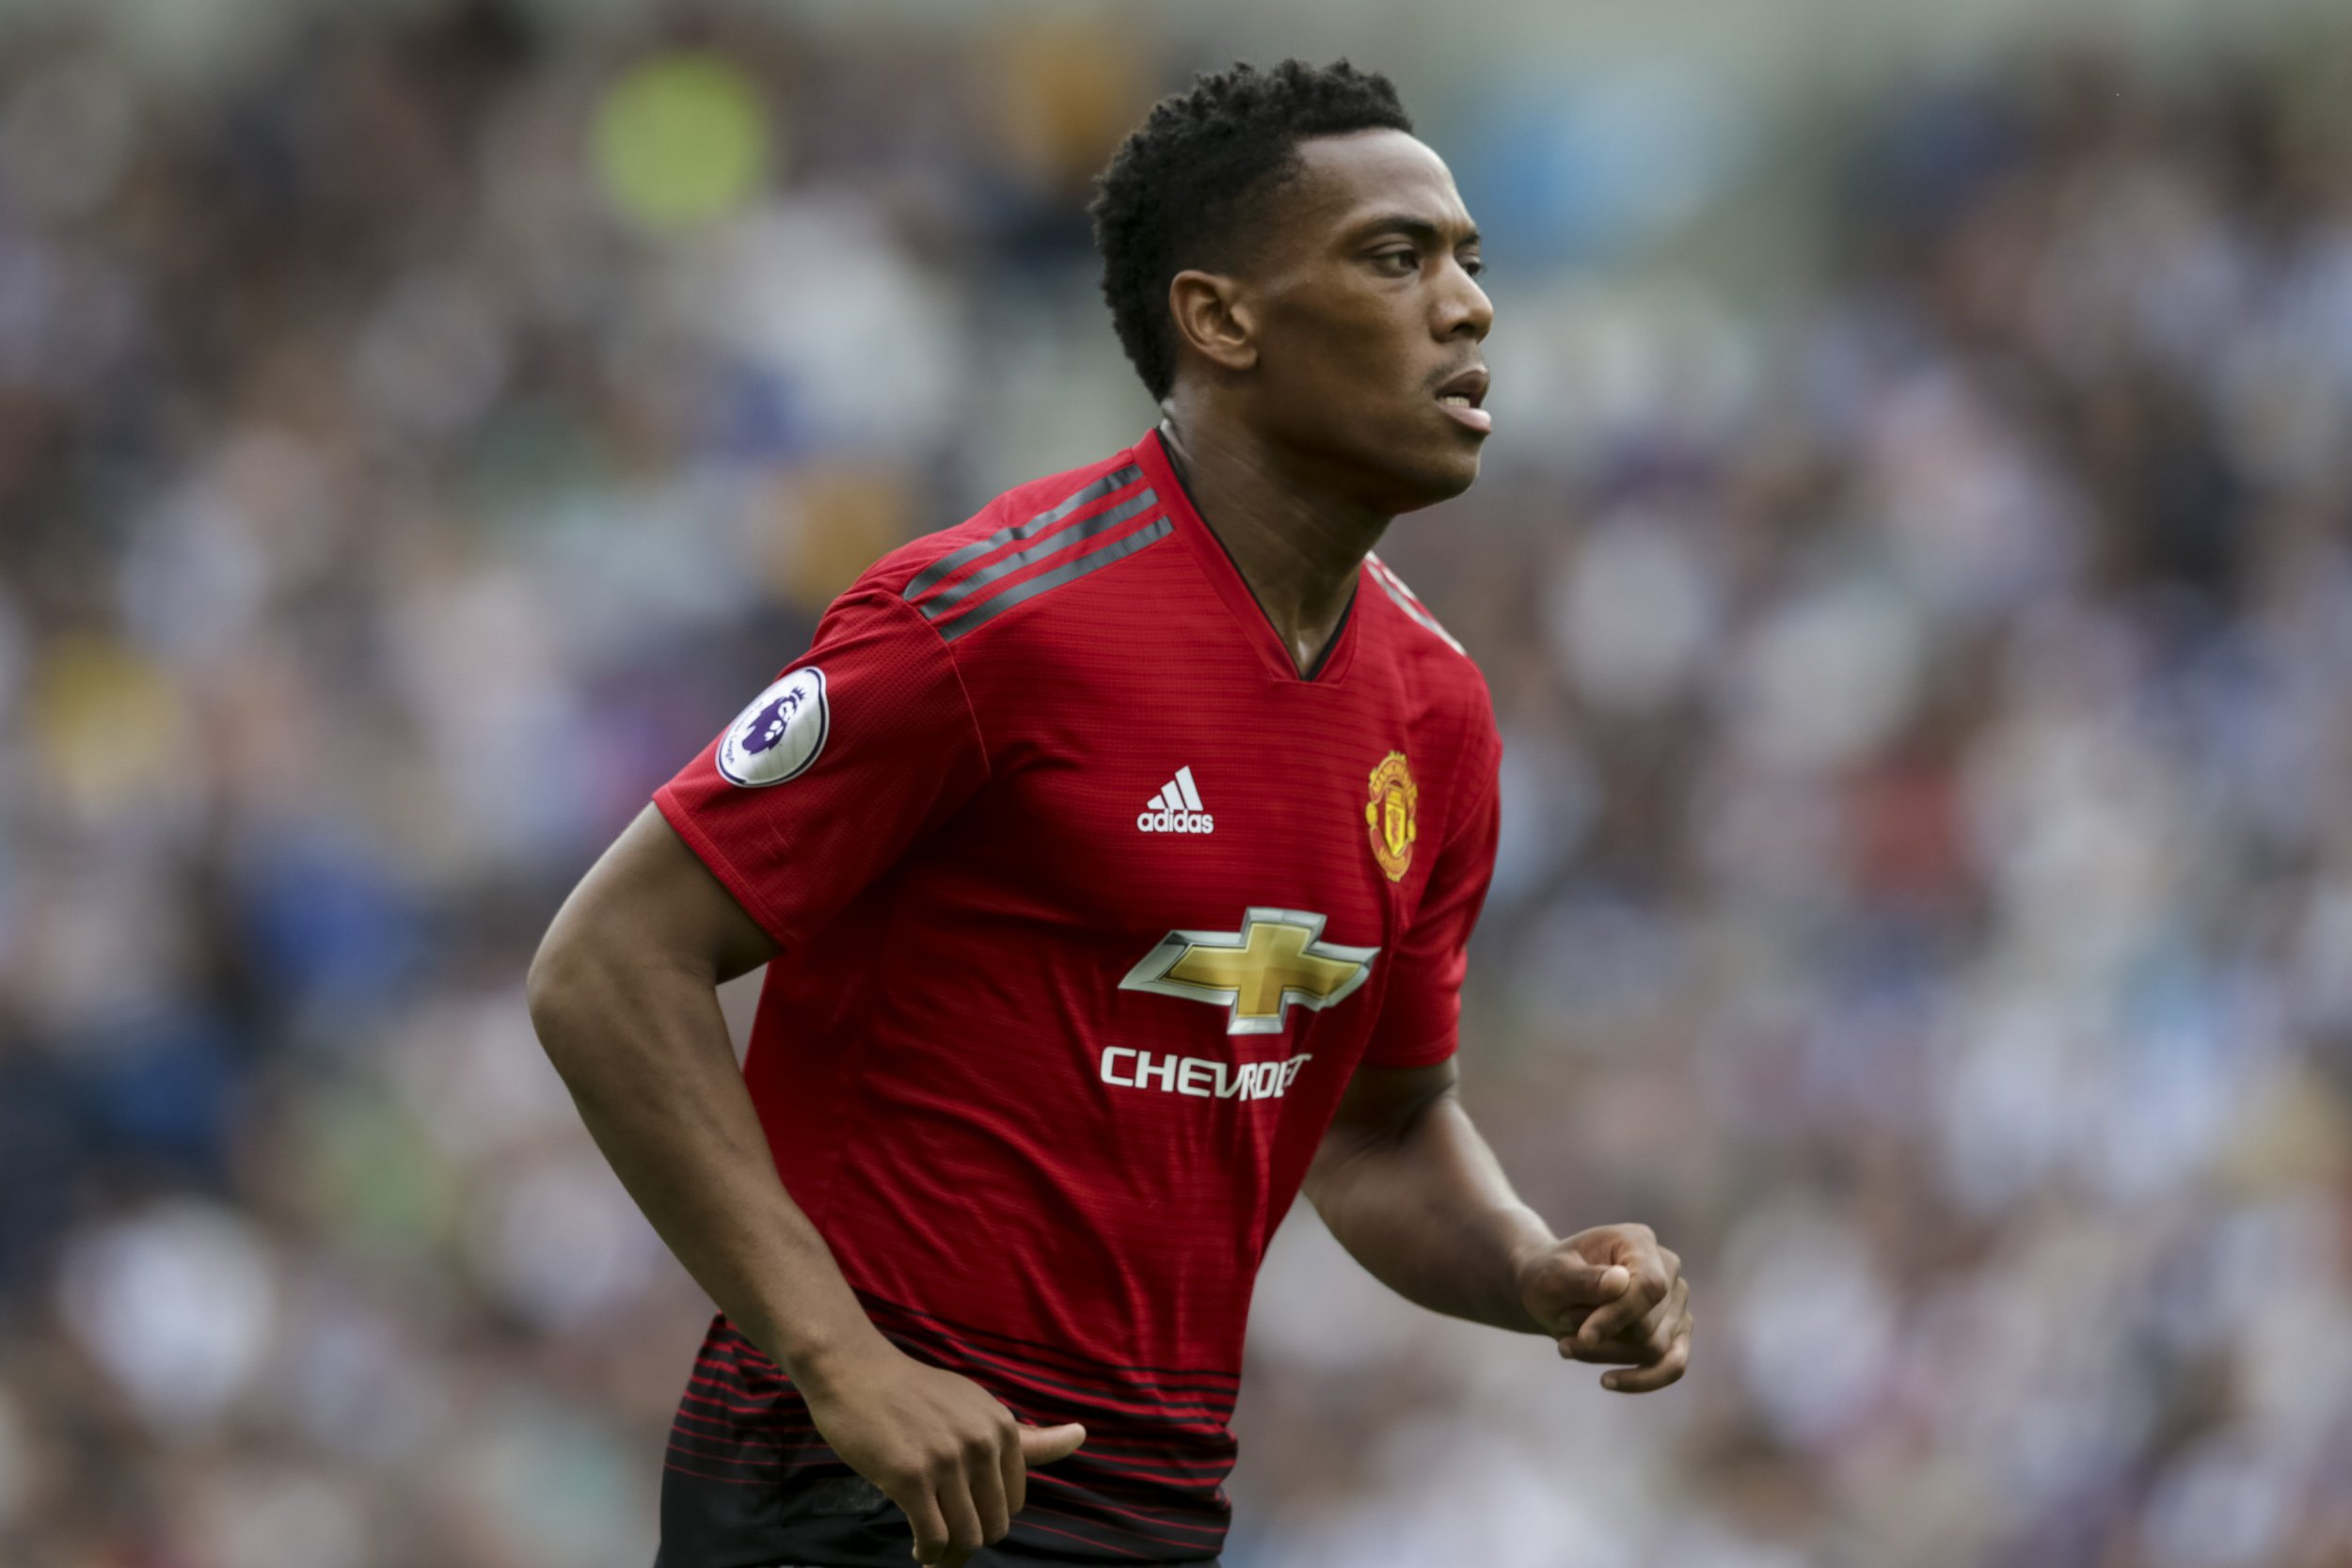 Anthony Martial of Manchester United during the Premier League match between Brighton and Hove Albion and Manchester United at the American Express Community Stadium, Brighton and Hove, England on 19 August 2018. Photo by Robin Jones/Digital South.